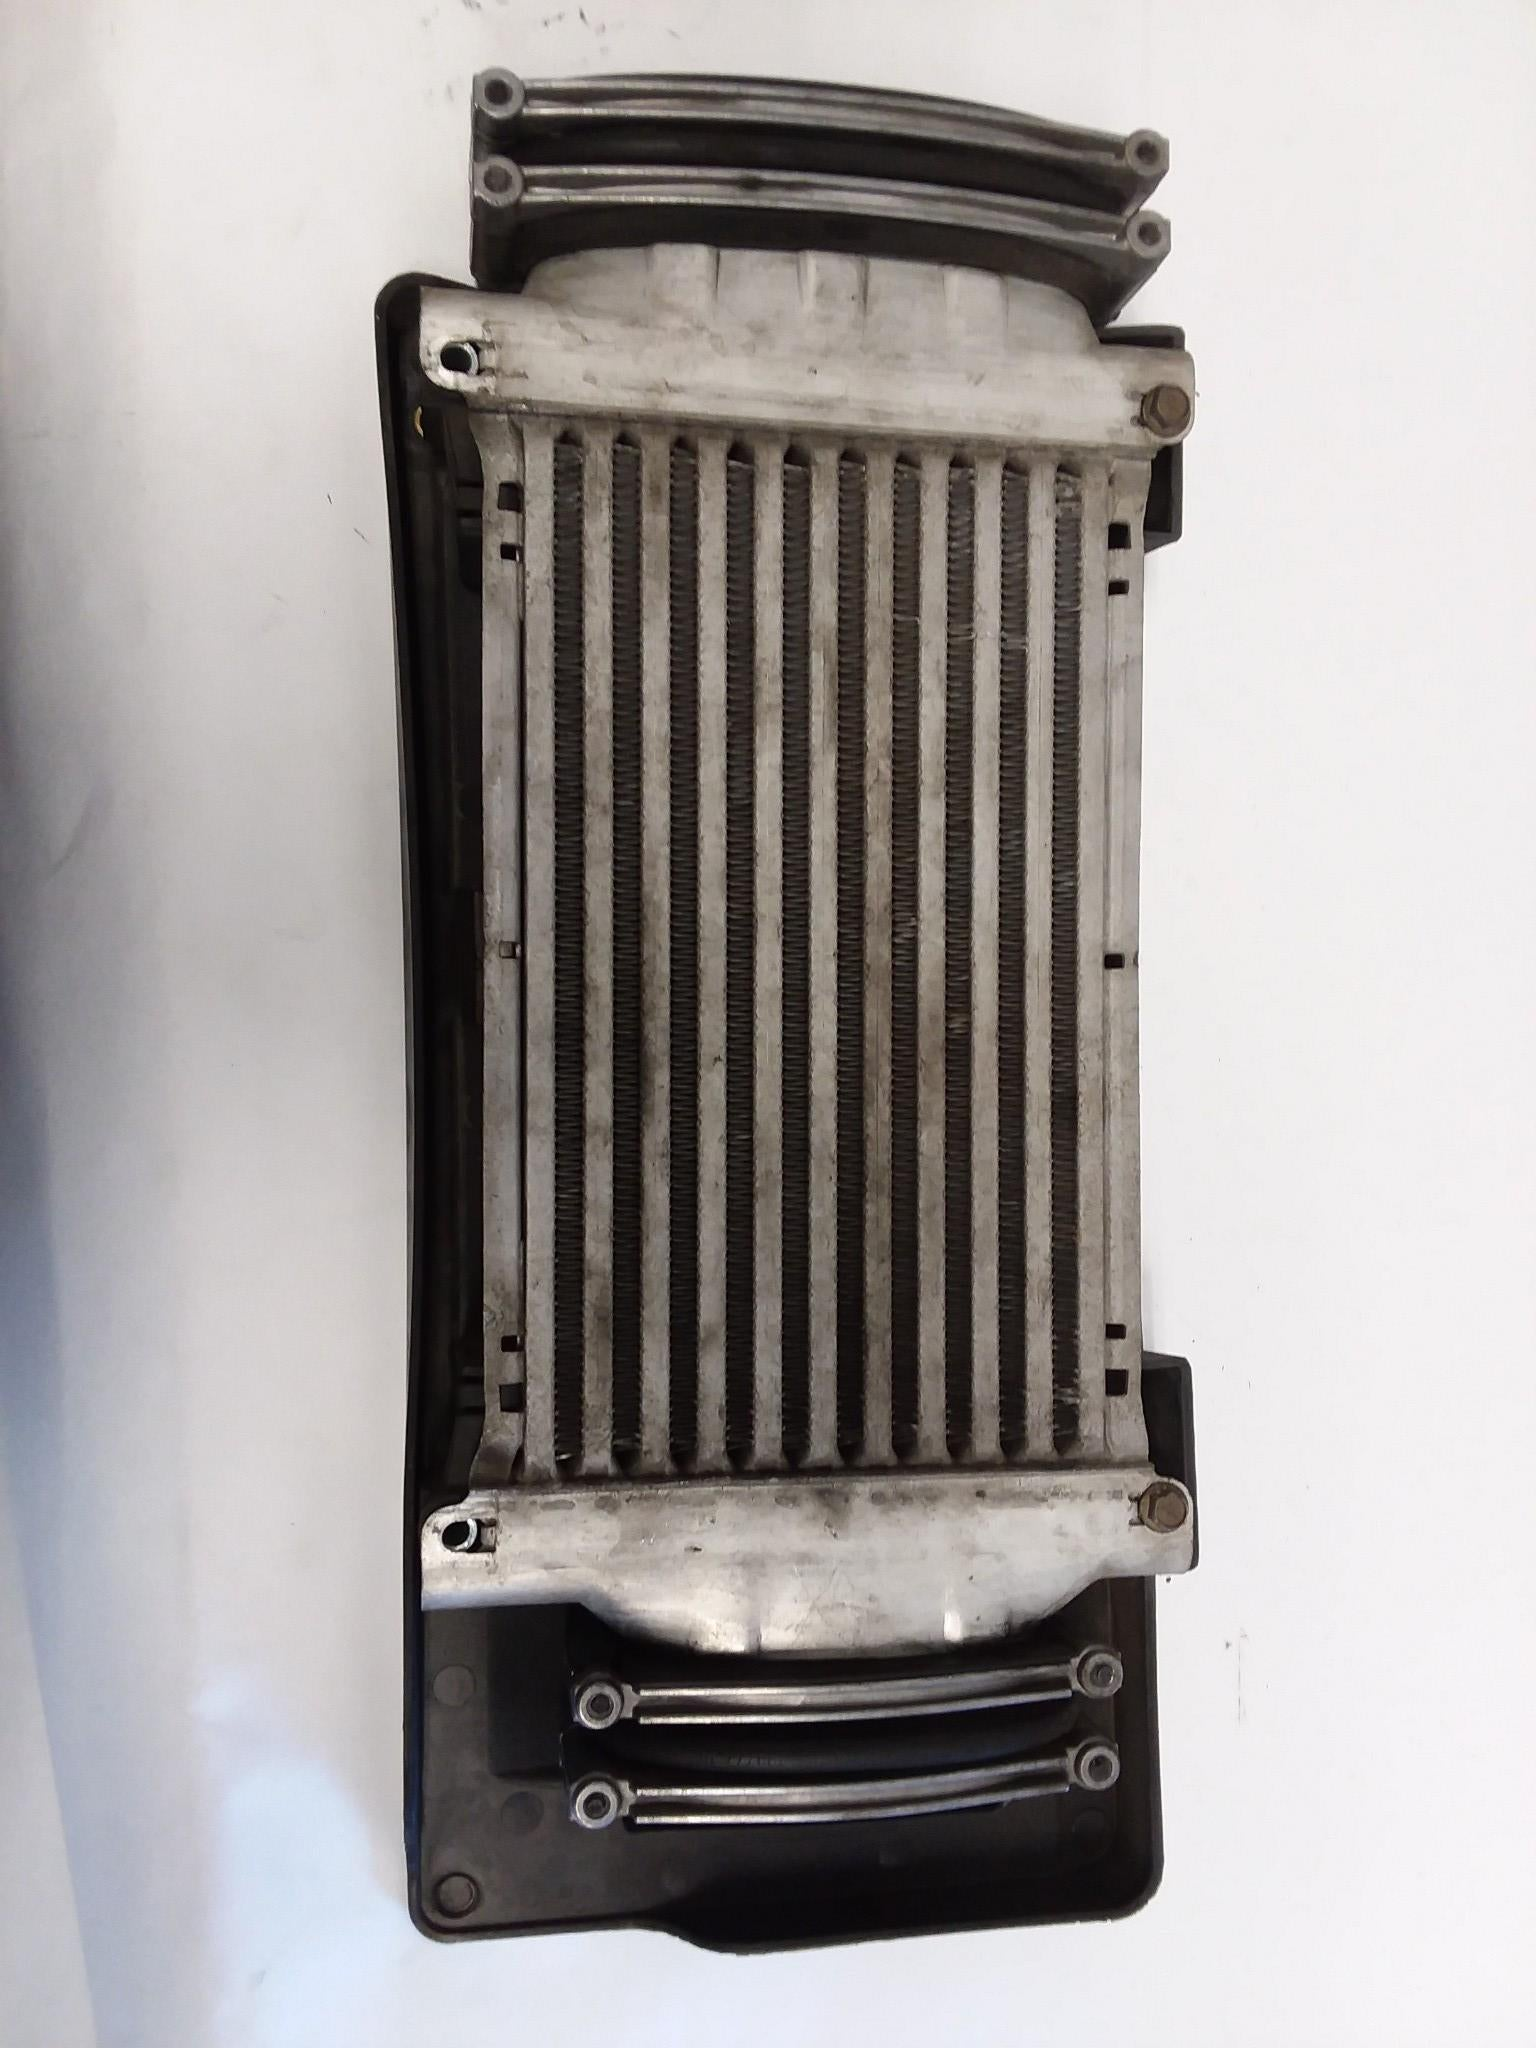 02-08 MINI COOPER S SUPERCHARGER INTERCOOLER CHARGE AIR COOLER 1515368